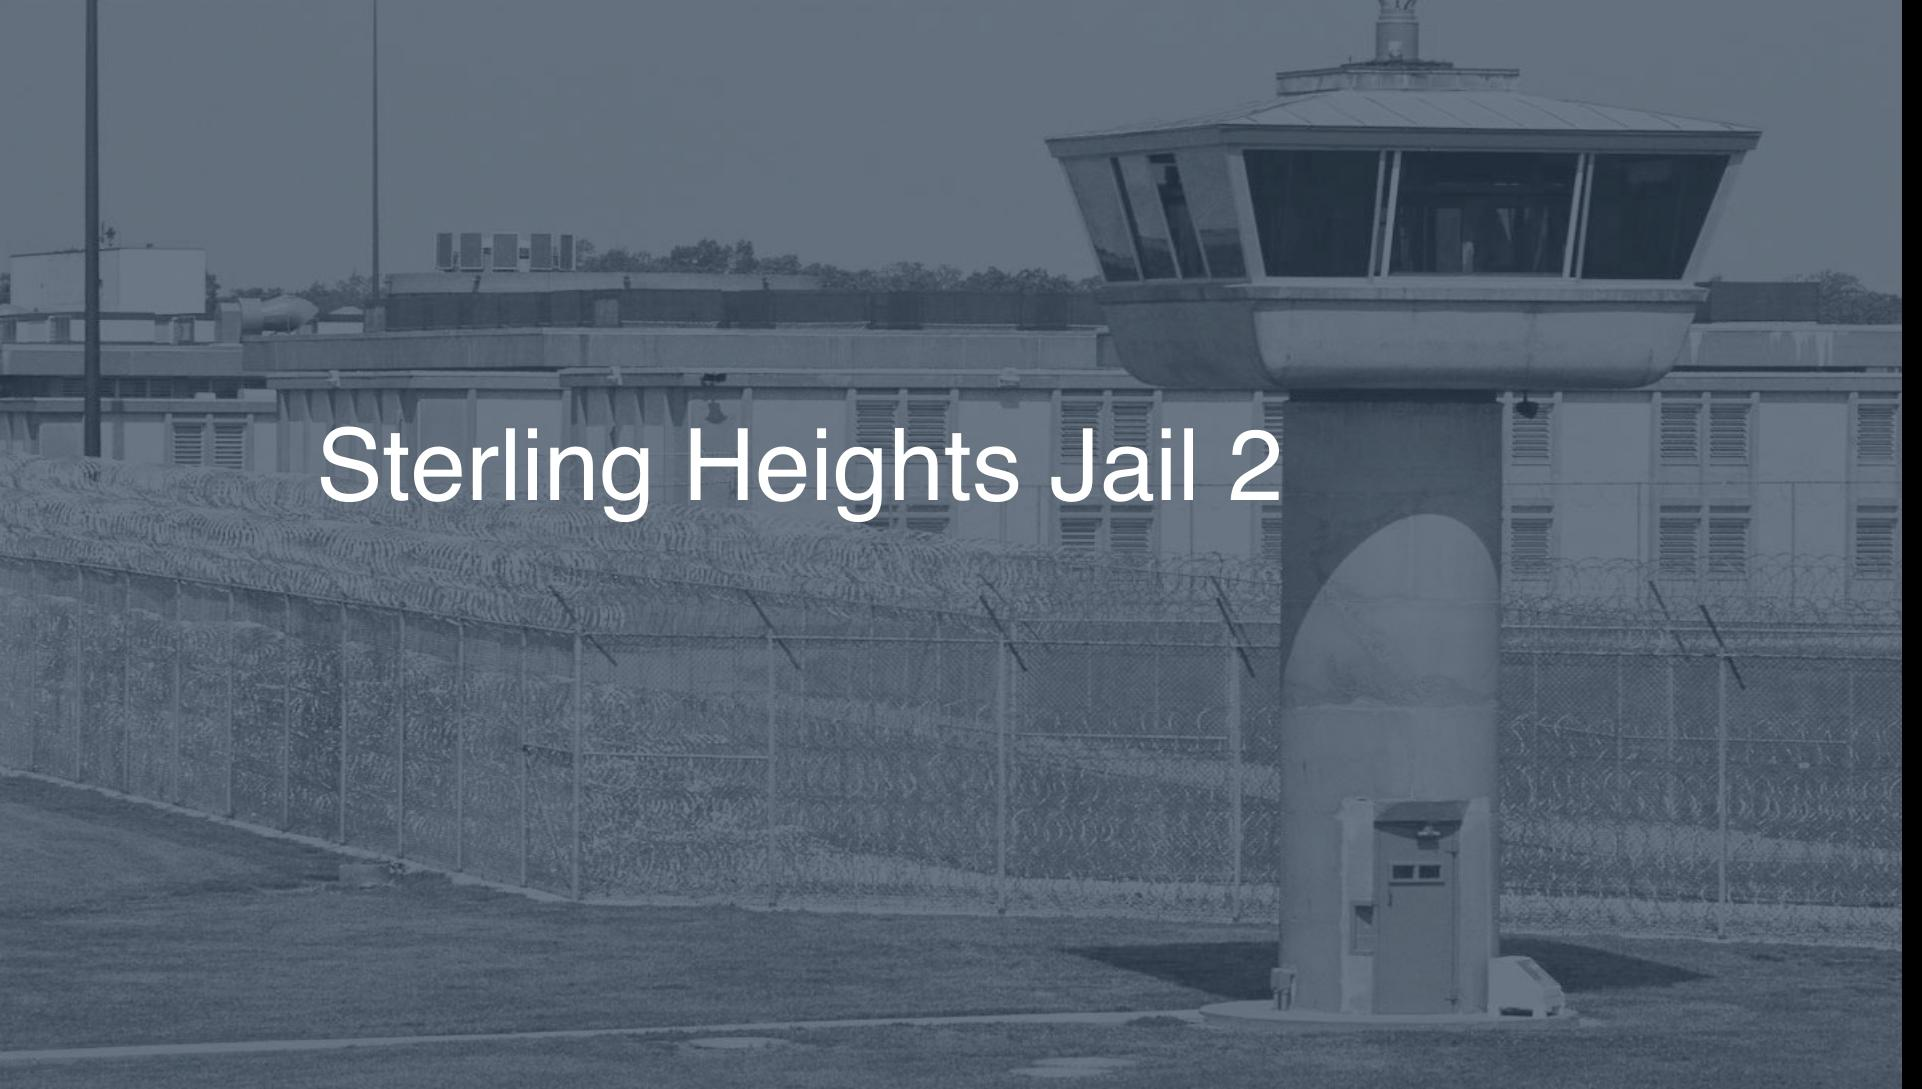 Sterling Heights Jail correctional facility picture